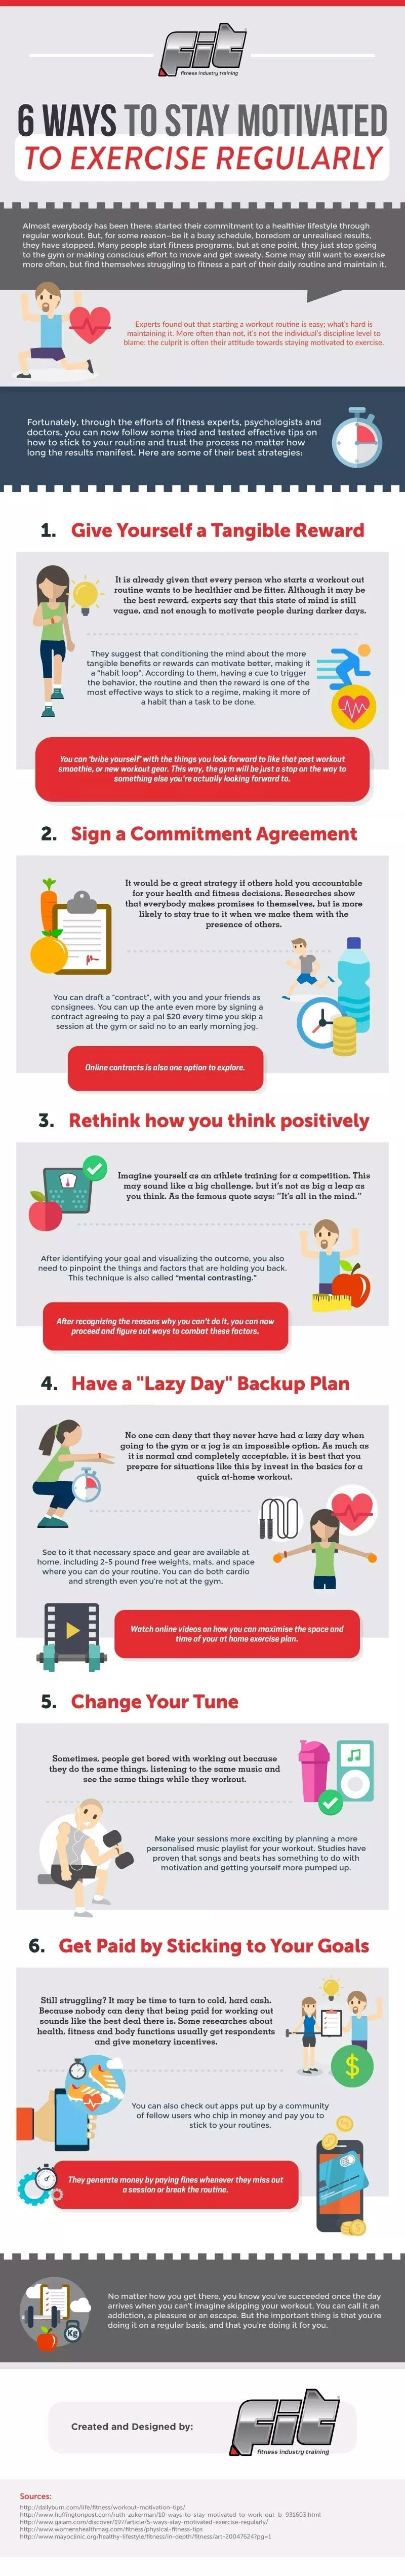 6 Ways to Stay Motivated to Exercise Regularly #infographic